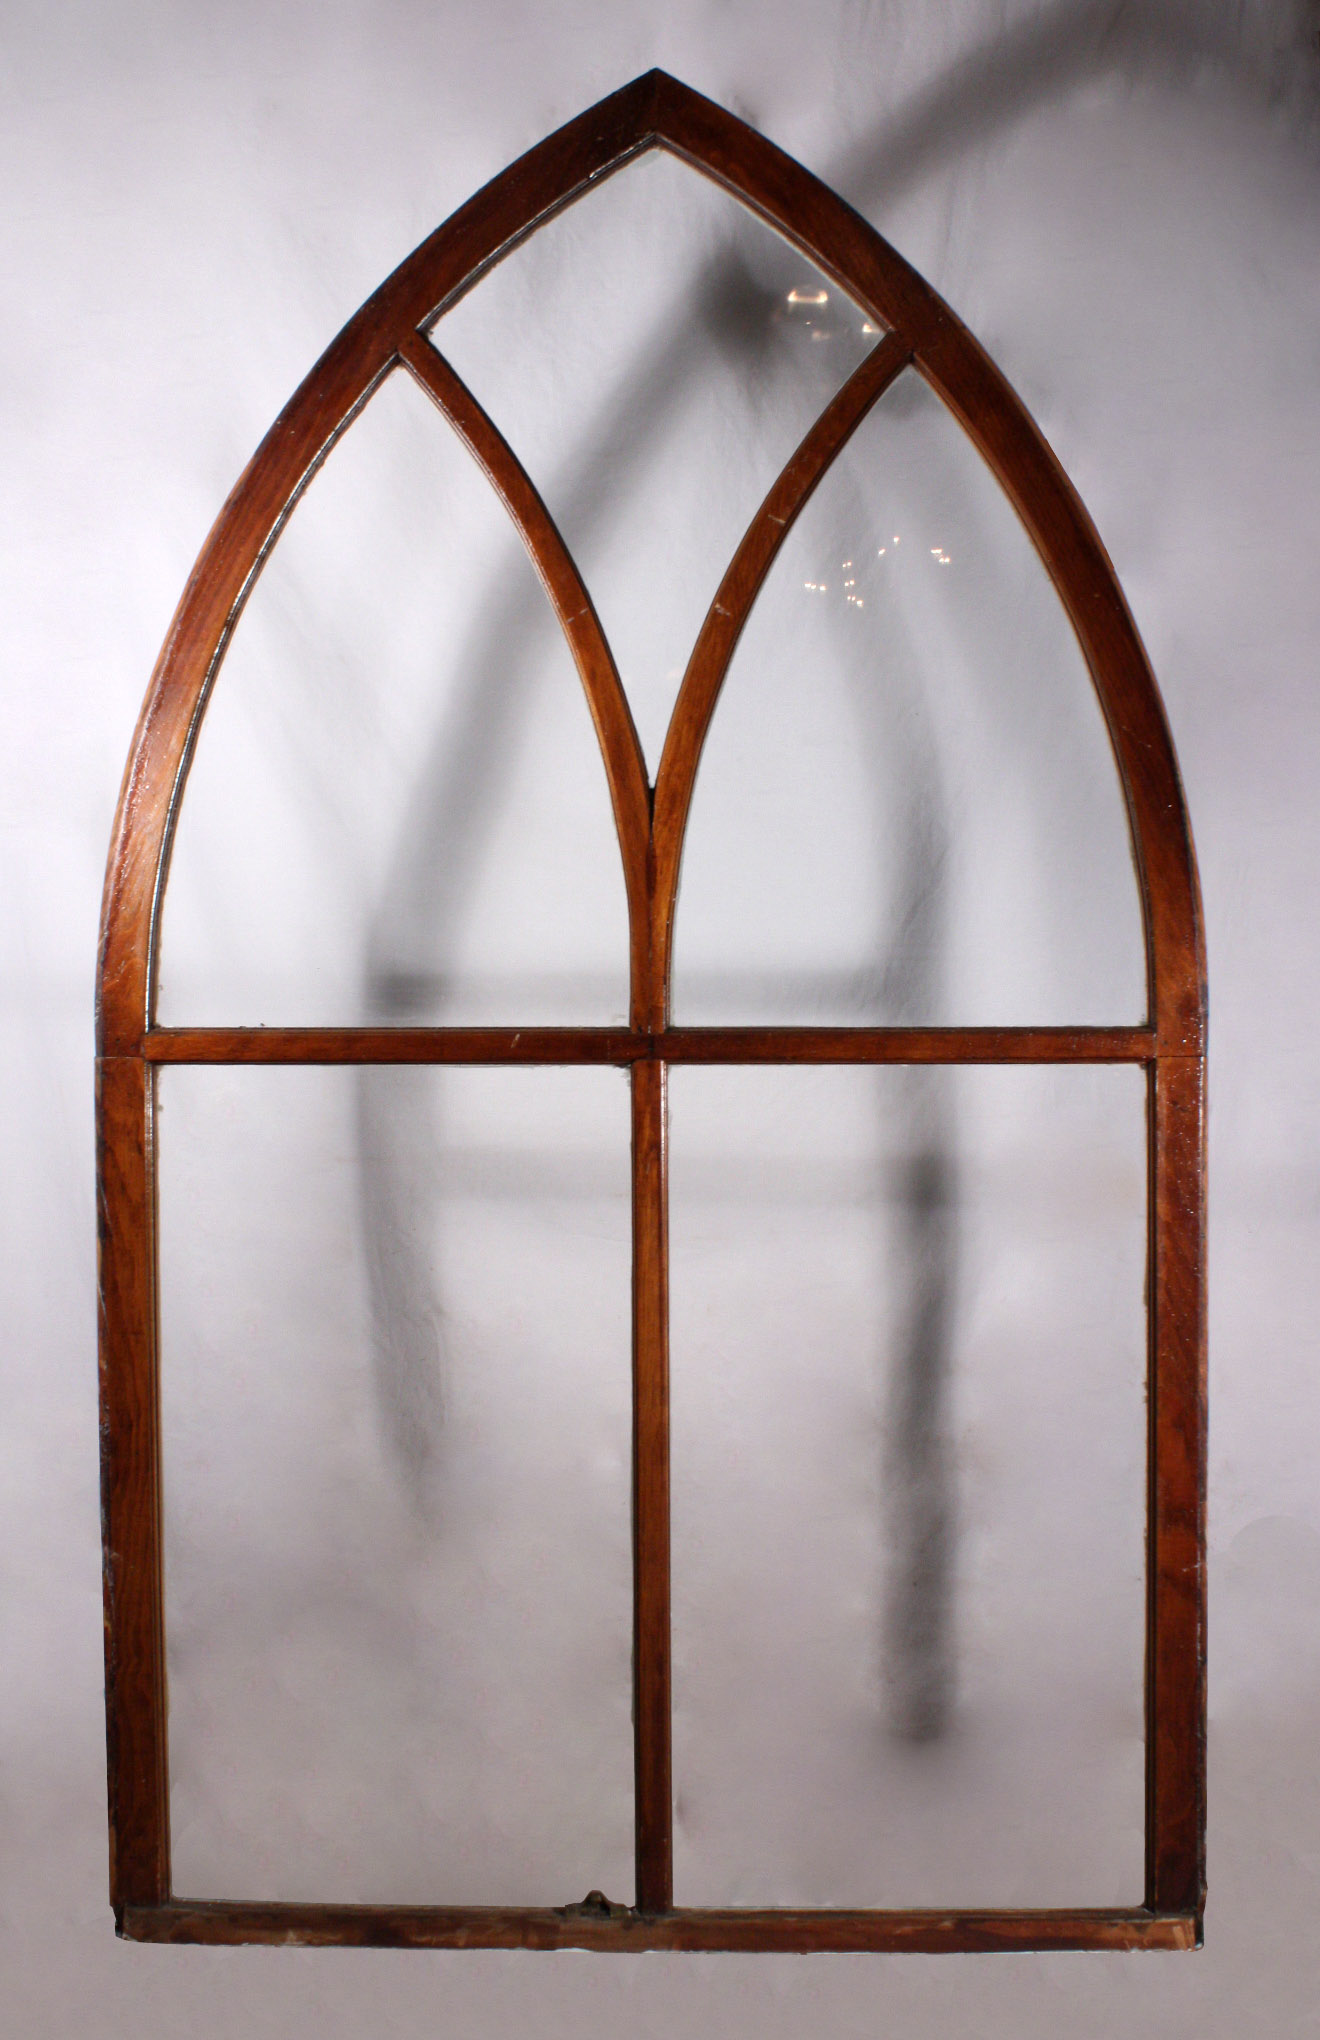 100 vintage windows for sale windows crescent moon for Windows for sale